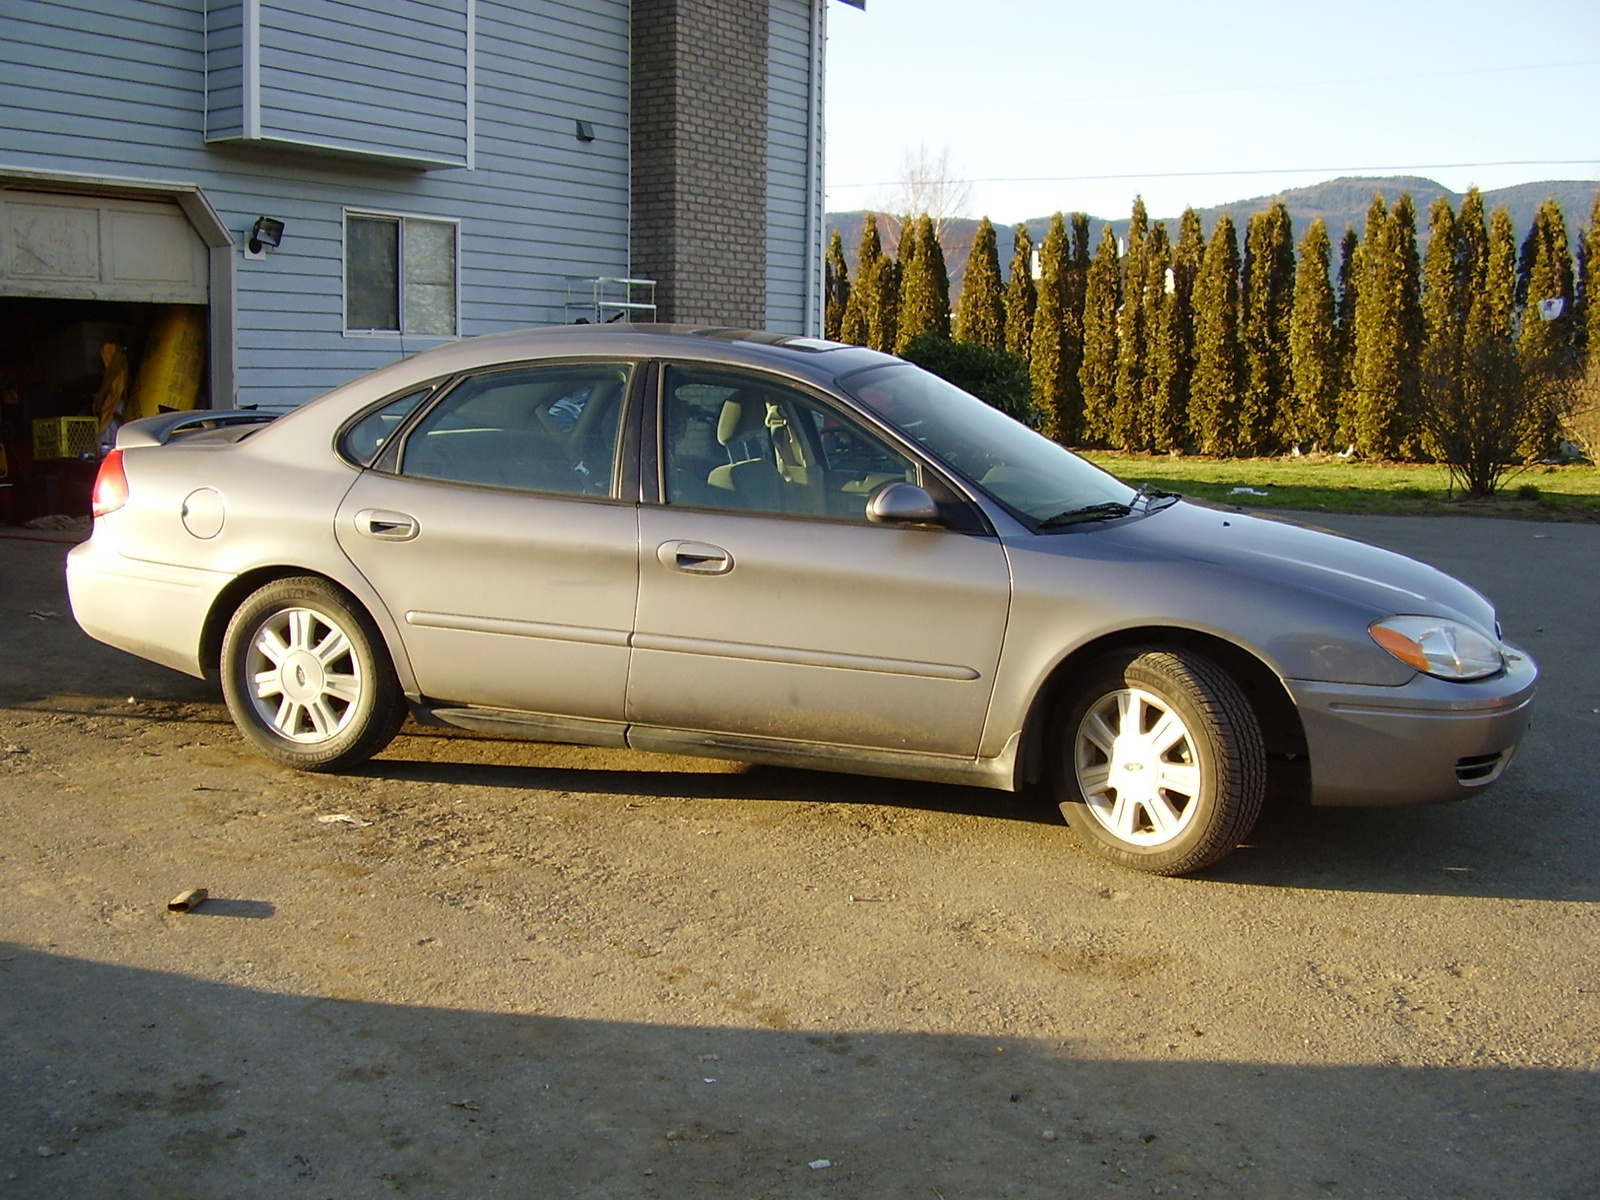 2008 Ford Taurus SEL picture